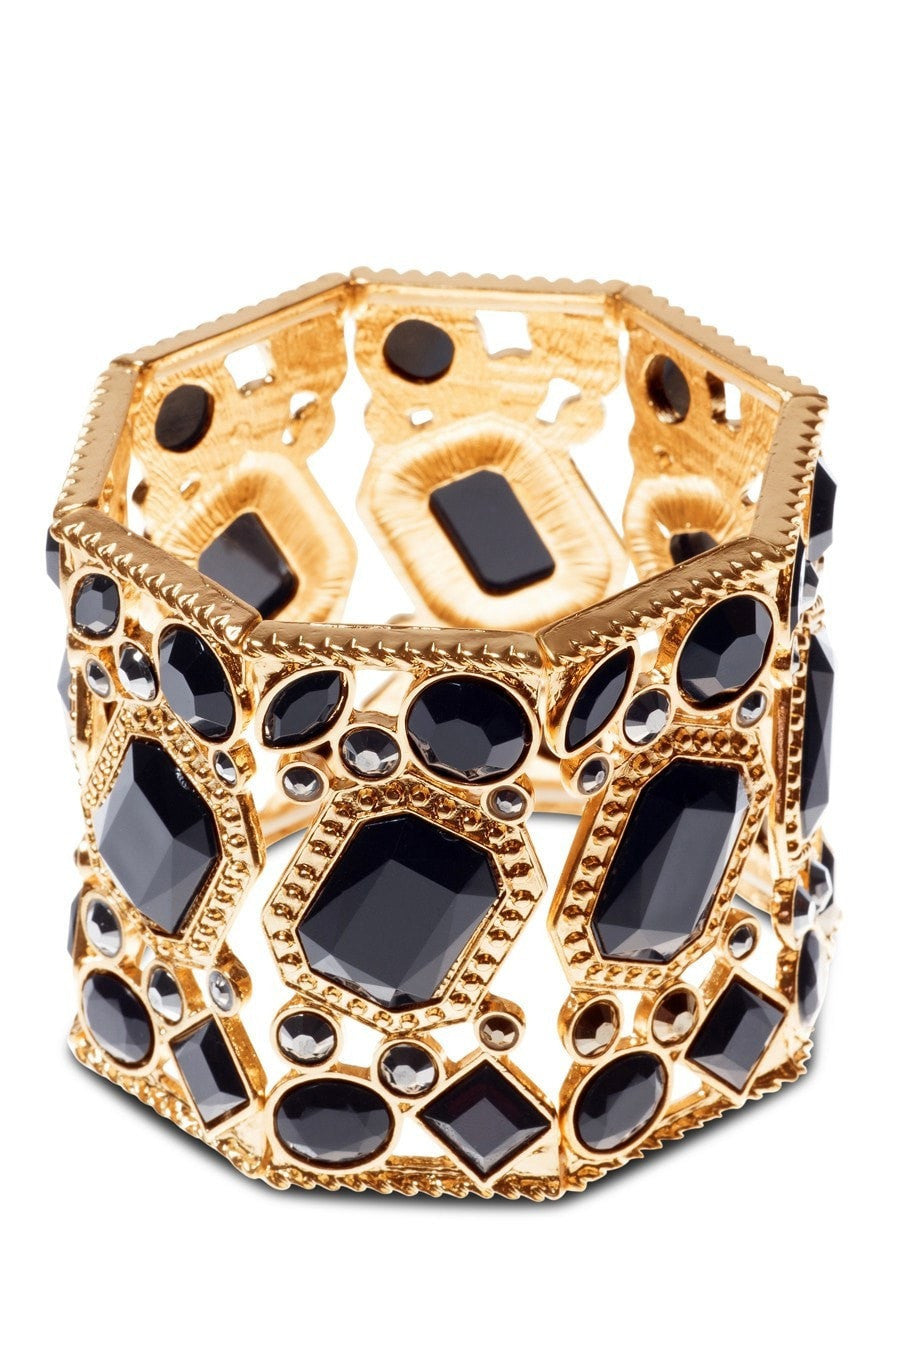 Bracelet - Kardashian Kollection Gold & Black Stone Cuff Bracelet